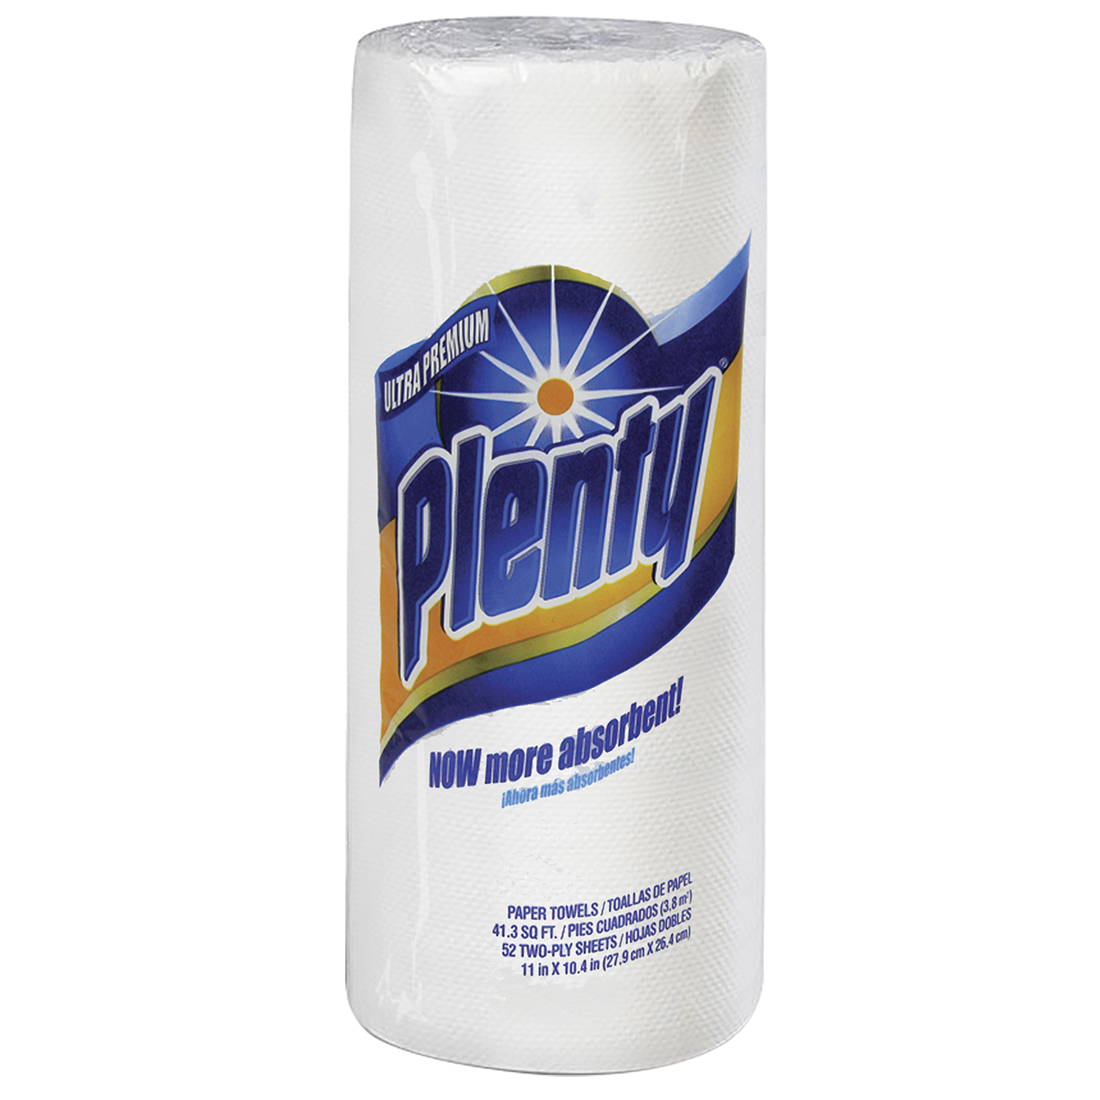 View PLENTY PAPER TOWELS 52-2 PLY SHEETS